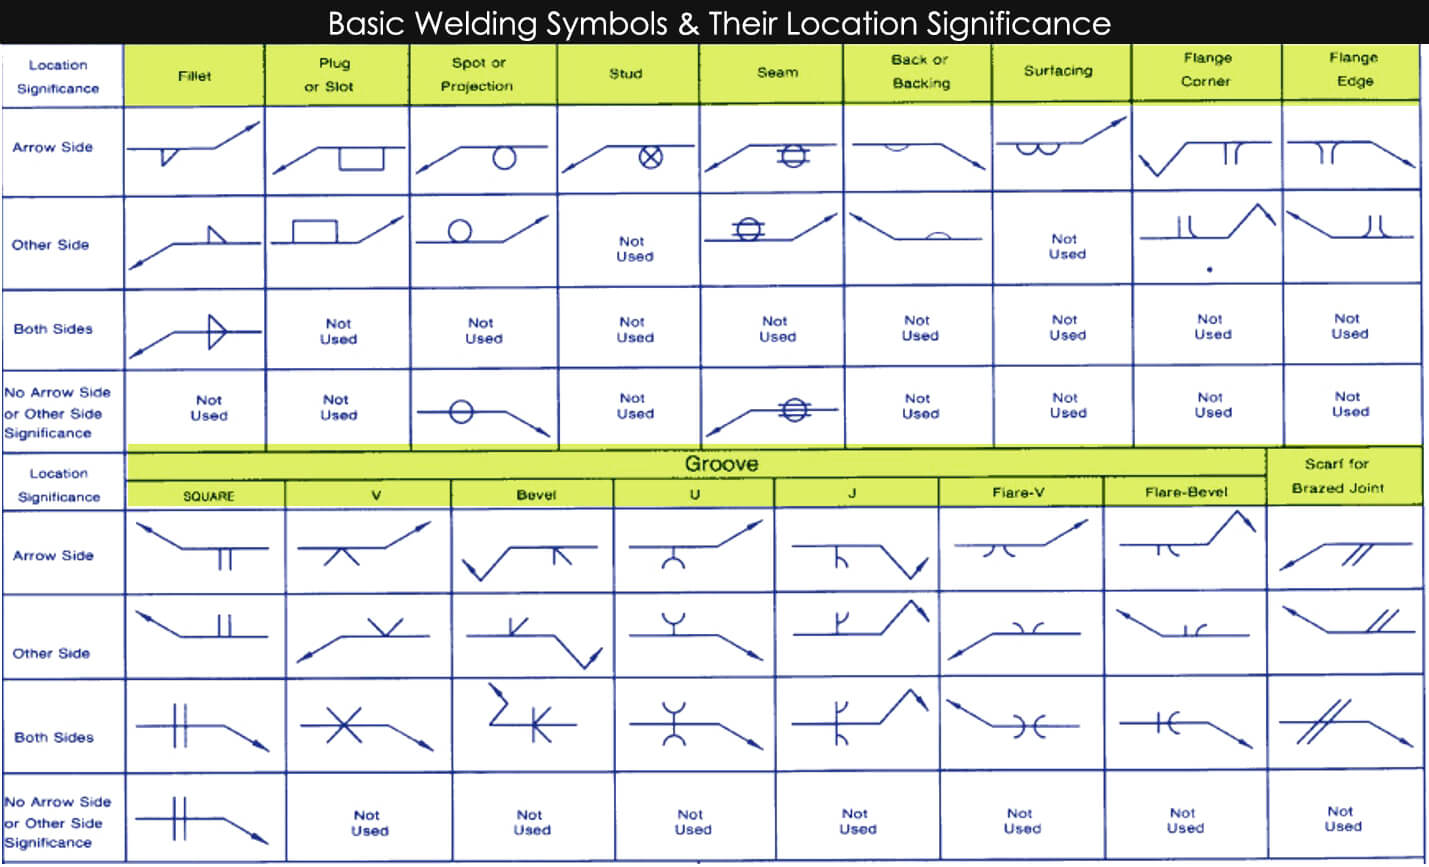 Basic Welding Symbols diagram